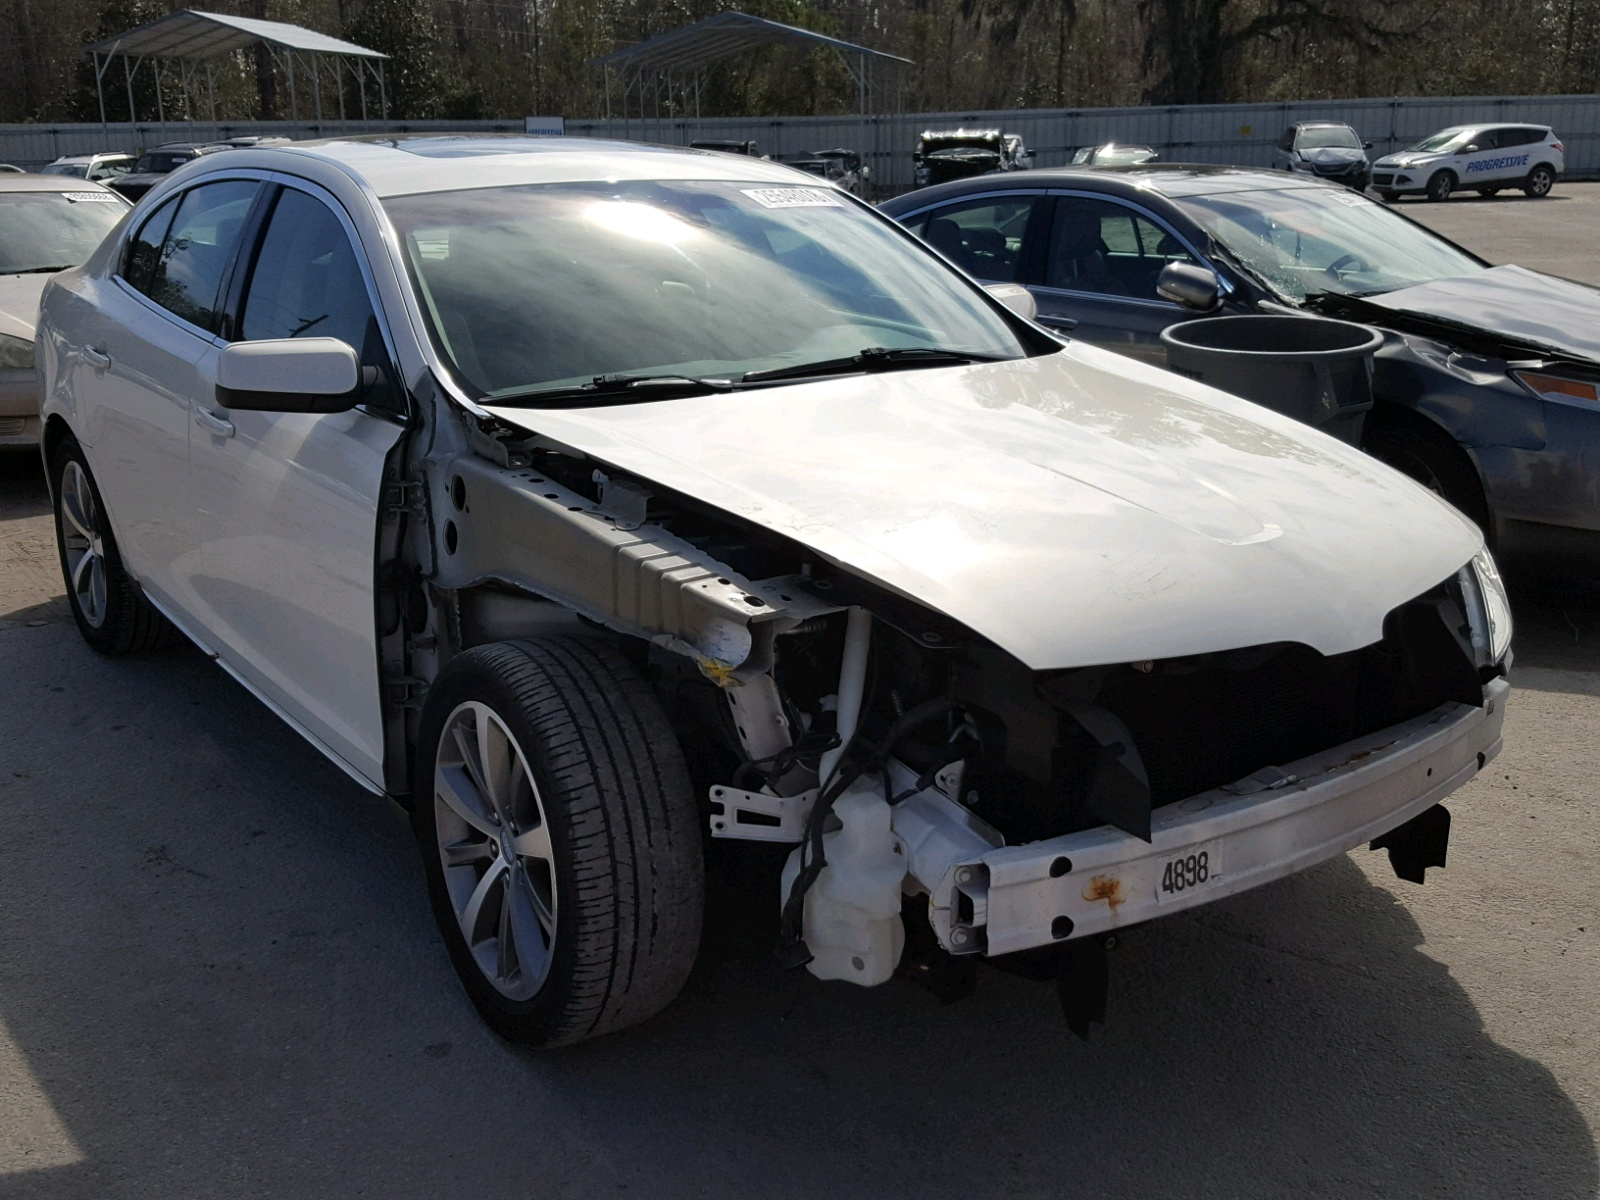 Auto Auction Ended On Vin 1lnhm82w5yy933280 2000 Lincoln Town Car S In In Indianapolis